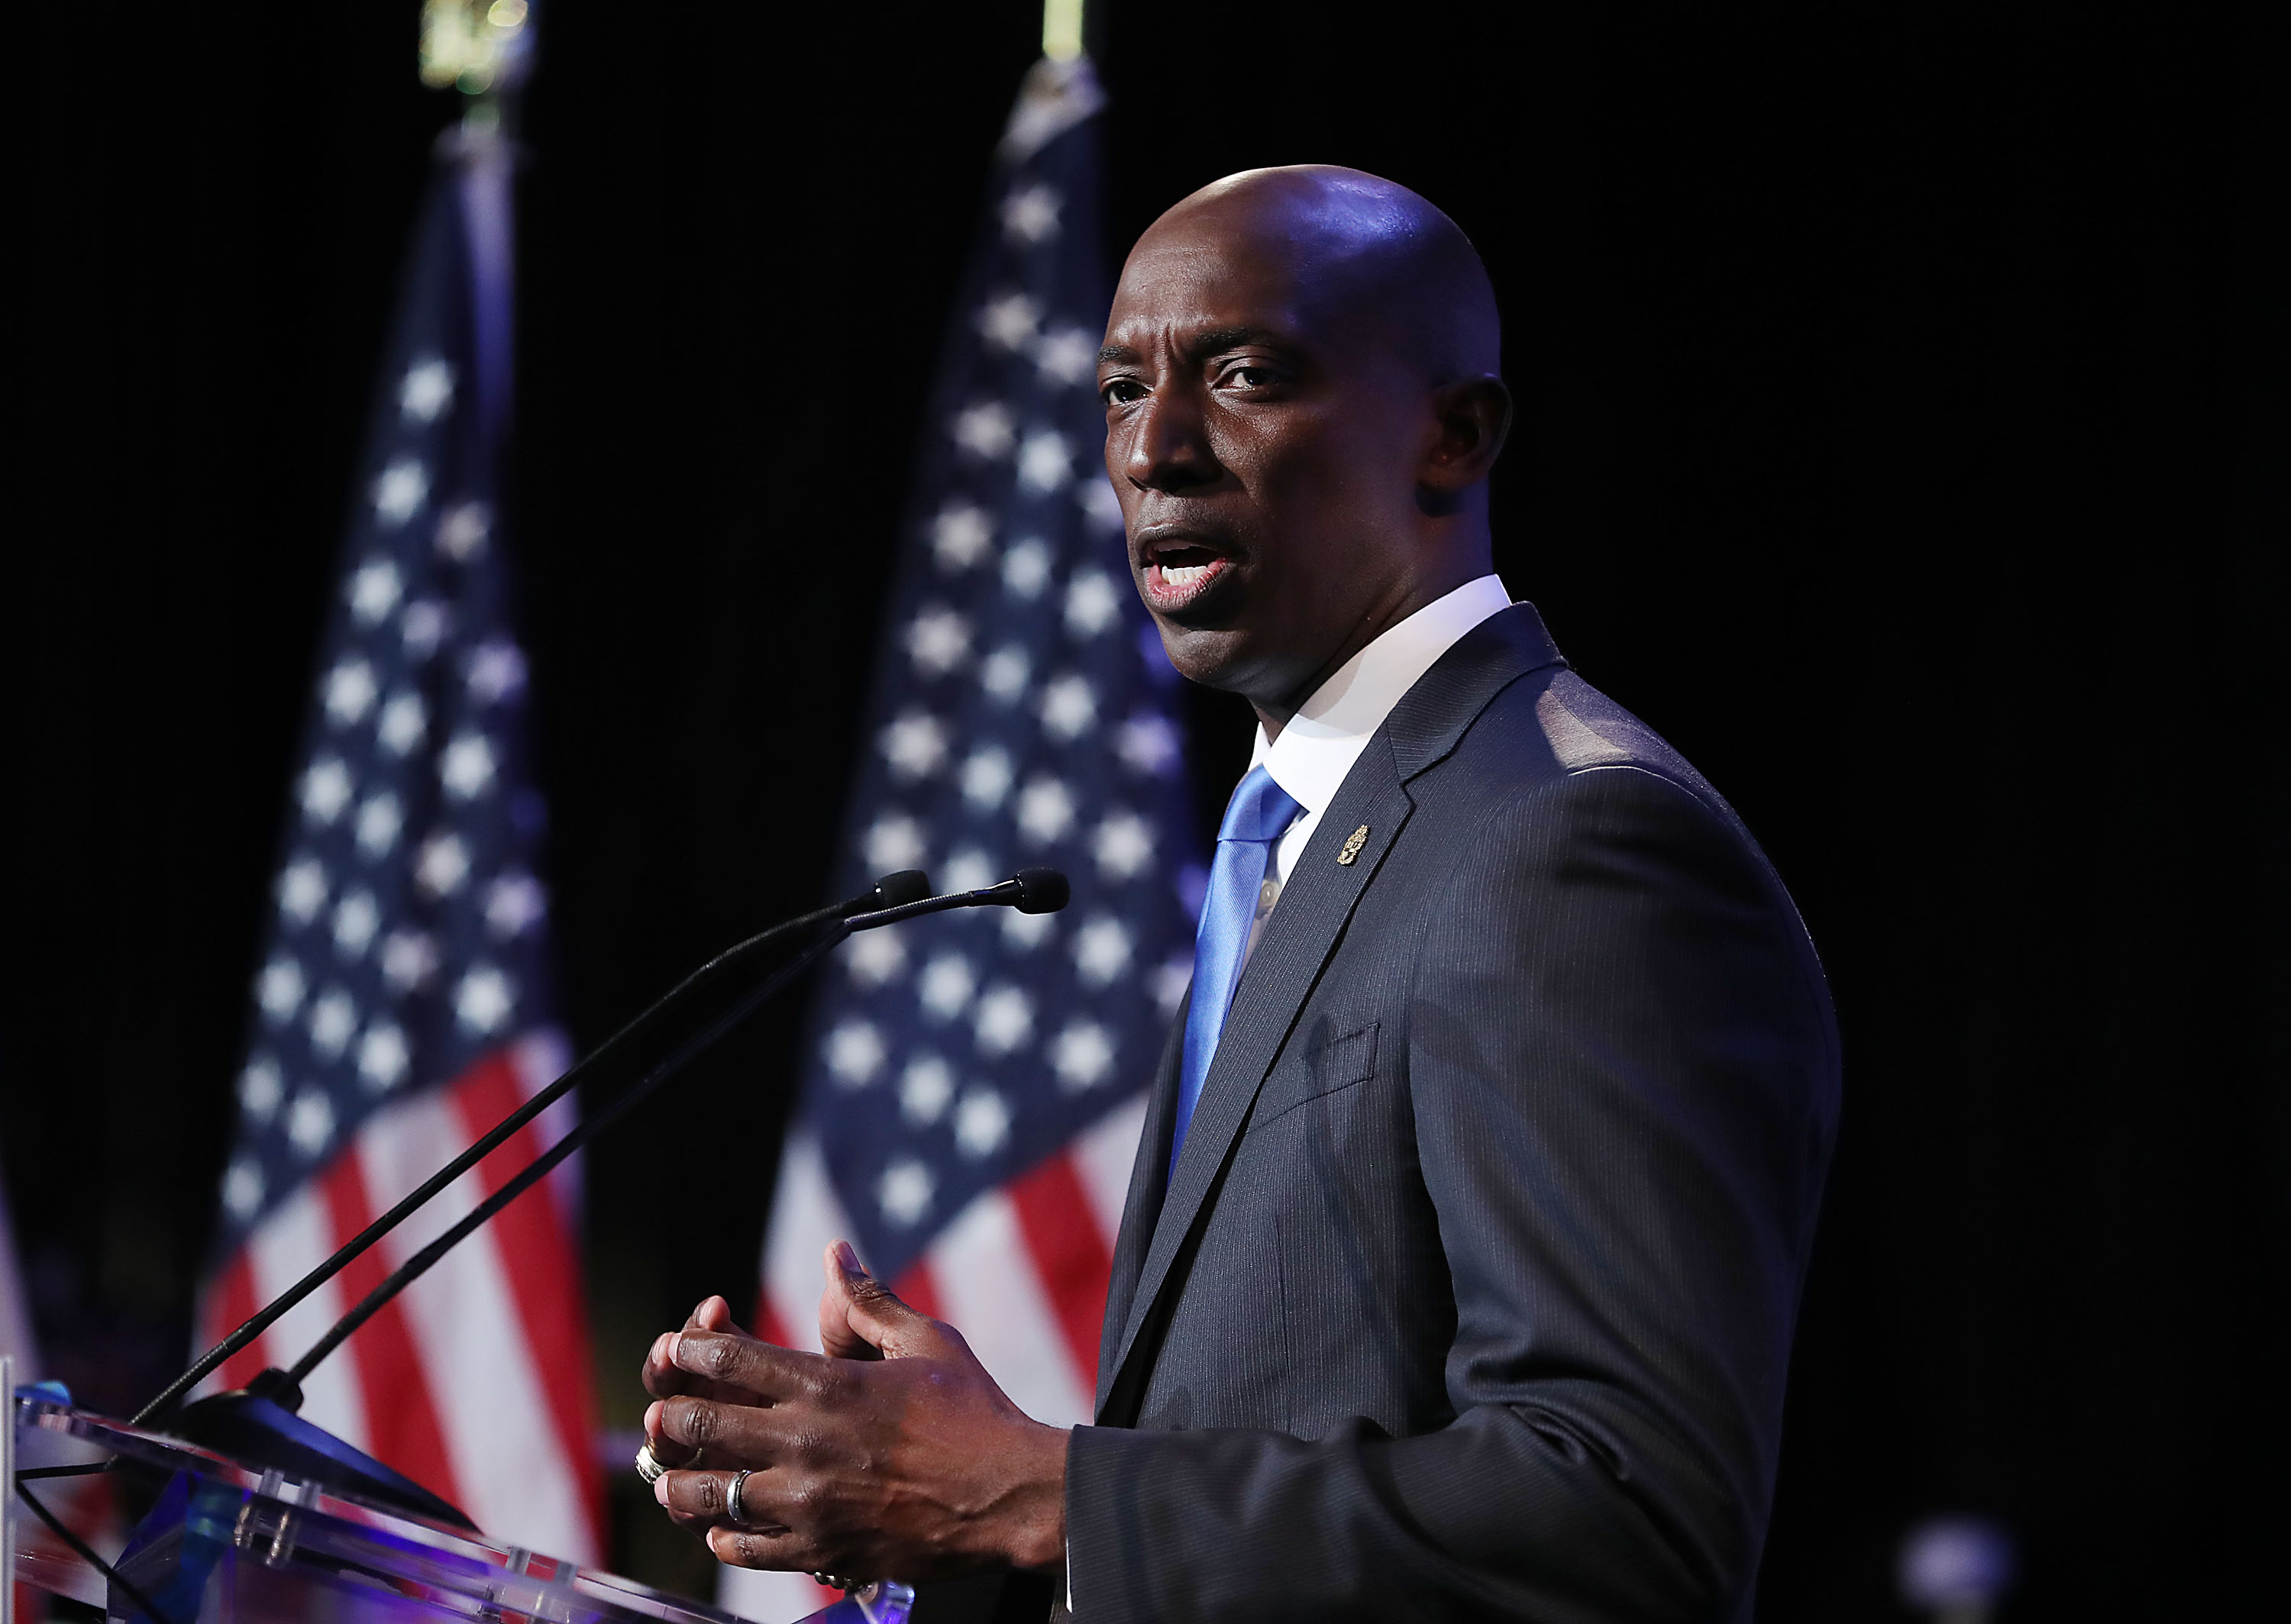 Miramar, Florida Mayor Wayne Messam speaks at a rally at Florida Memorial University in Miami Gardens, Florida. The Democrat mayor announced his candidacy for president at the rally.